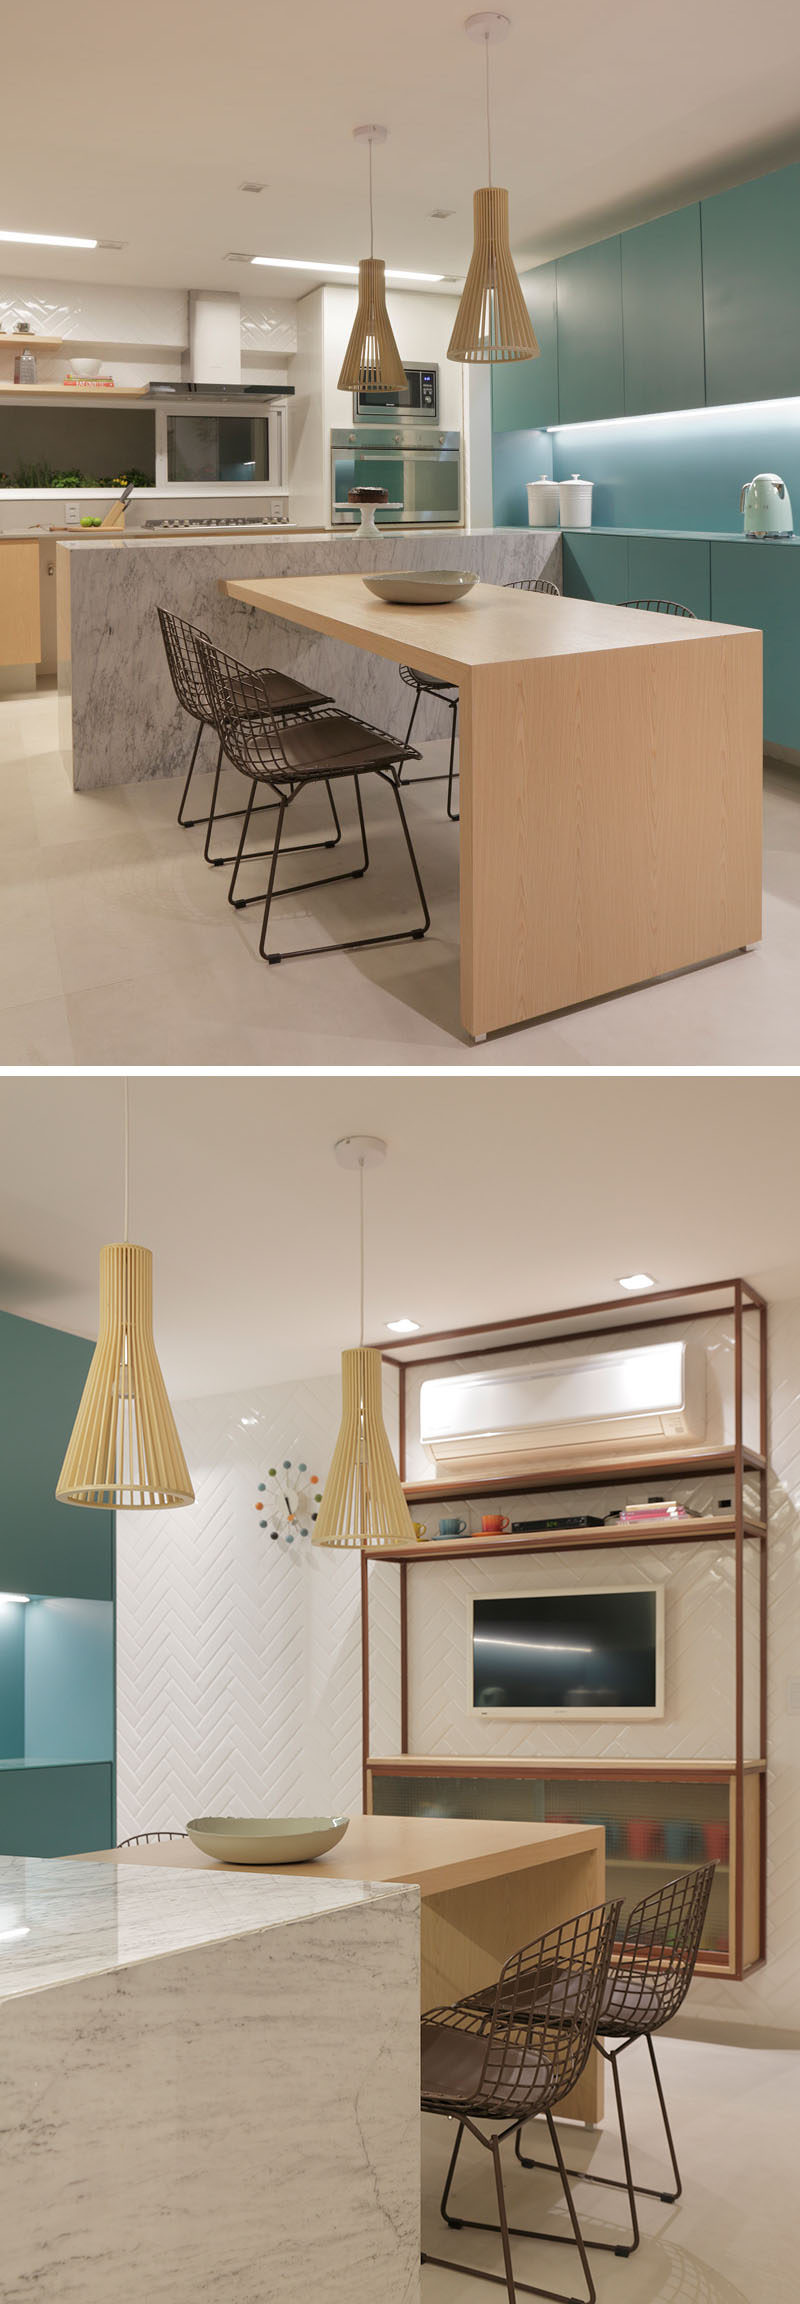 This Brazilian Apartment S Interior Design Features Wood Accents Throughout